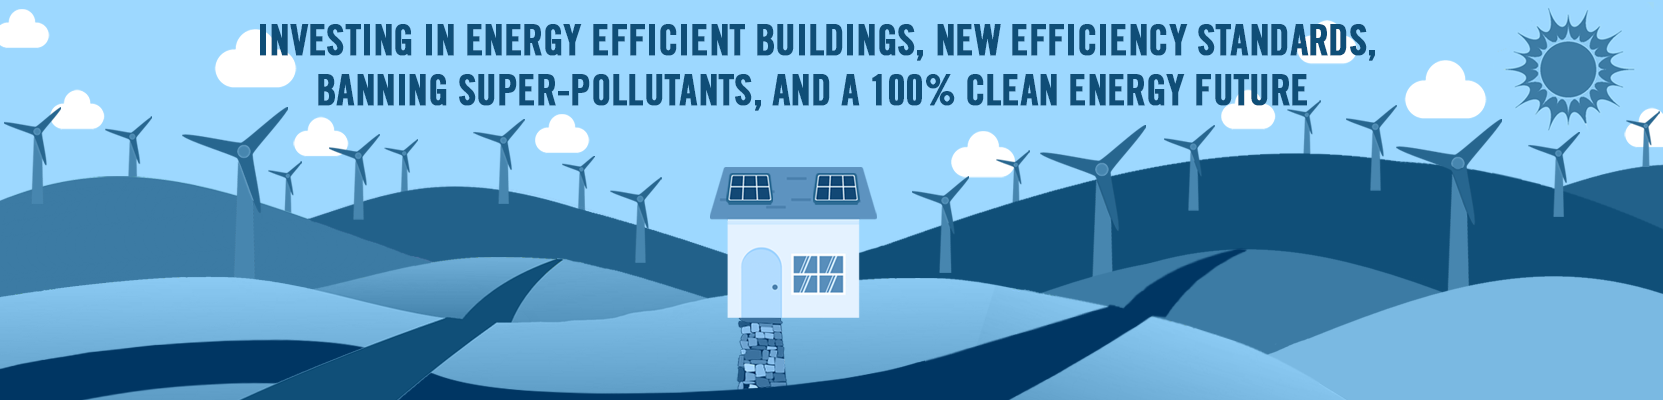 Graphic: Investing in energy efficient buildings, new efficiency standards, banning super-pollutants, and a 100% clean energy future